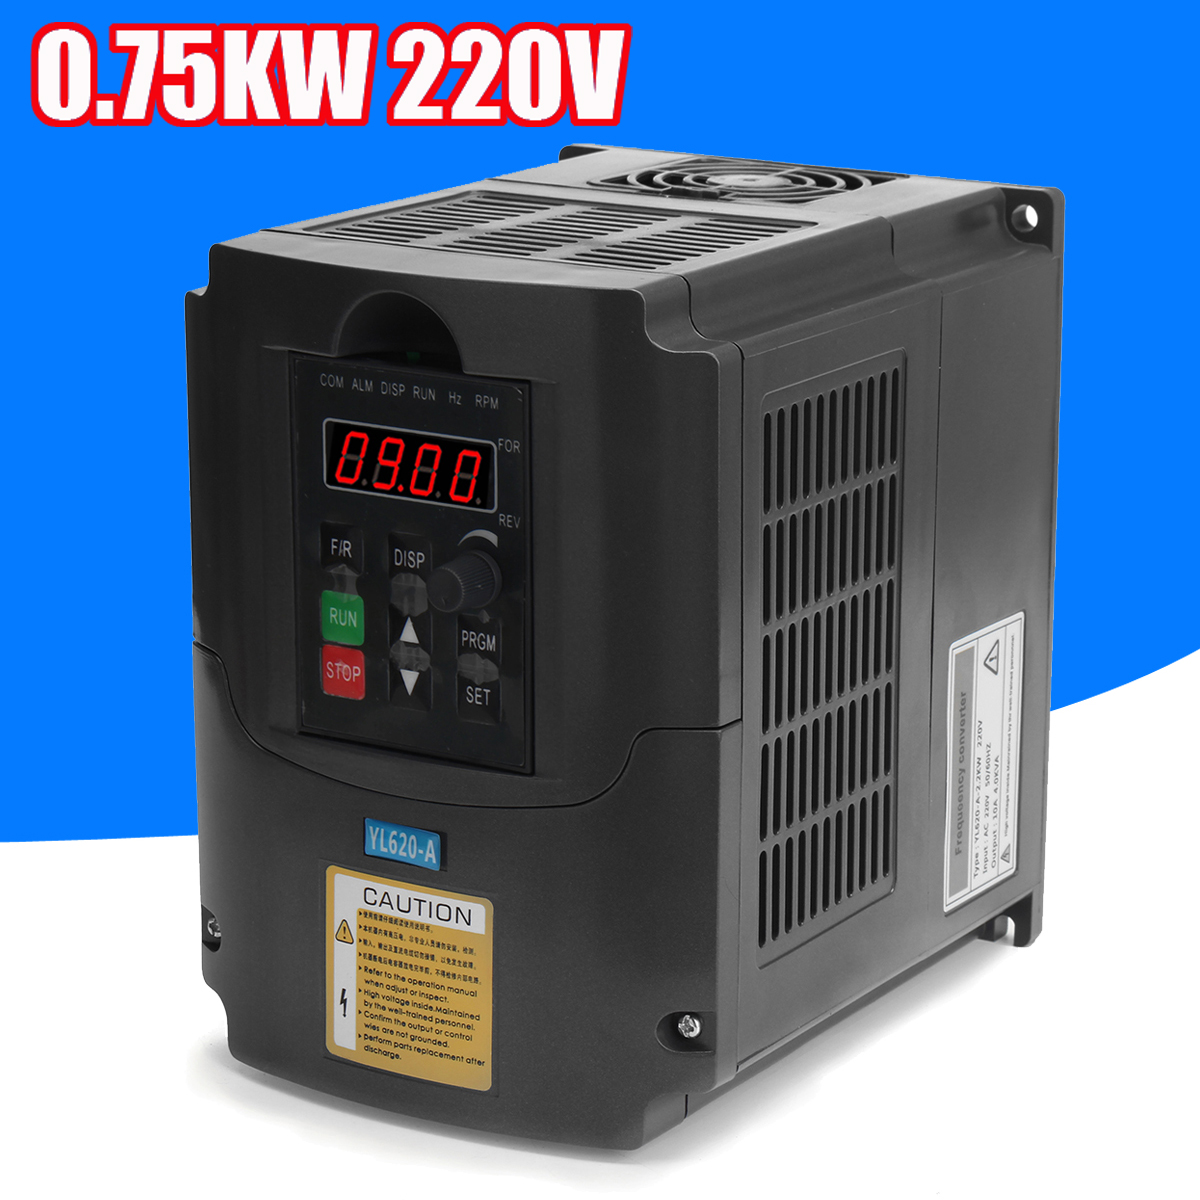 0.75kw 220V AC Variable Frequency Inverter Converter 3 Phase Output 50-60Hz Single Phase Input Space Voltage Vector Modulation 110v 2 2kw ac variable frequency inverter converter 3 phase output single phase input space voltage vector modulation